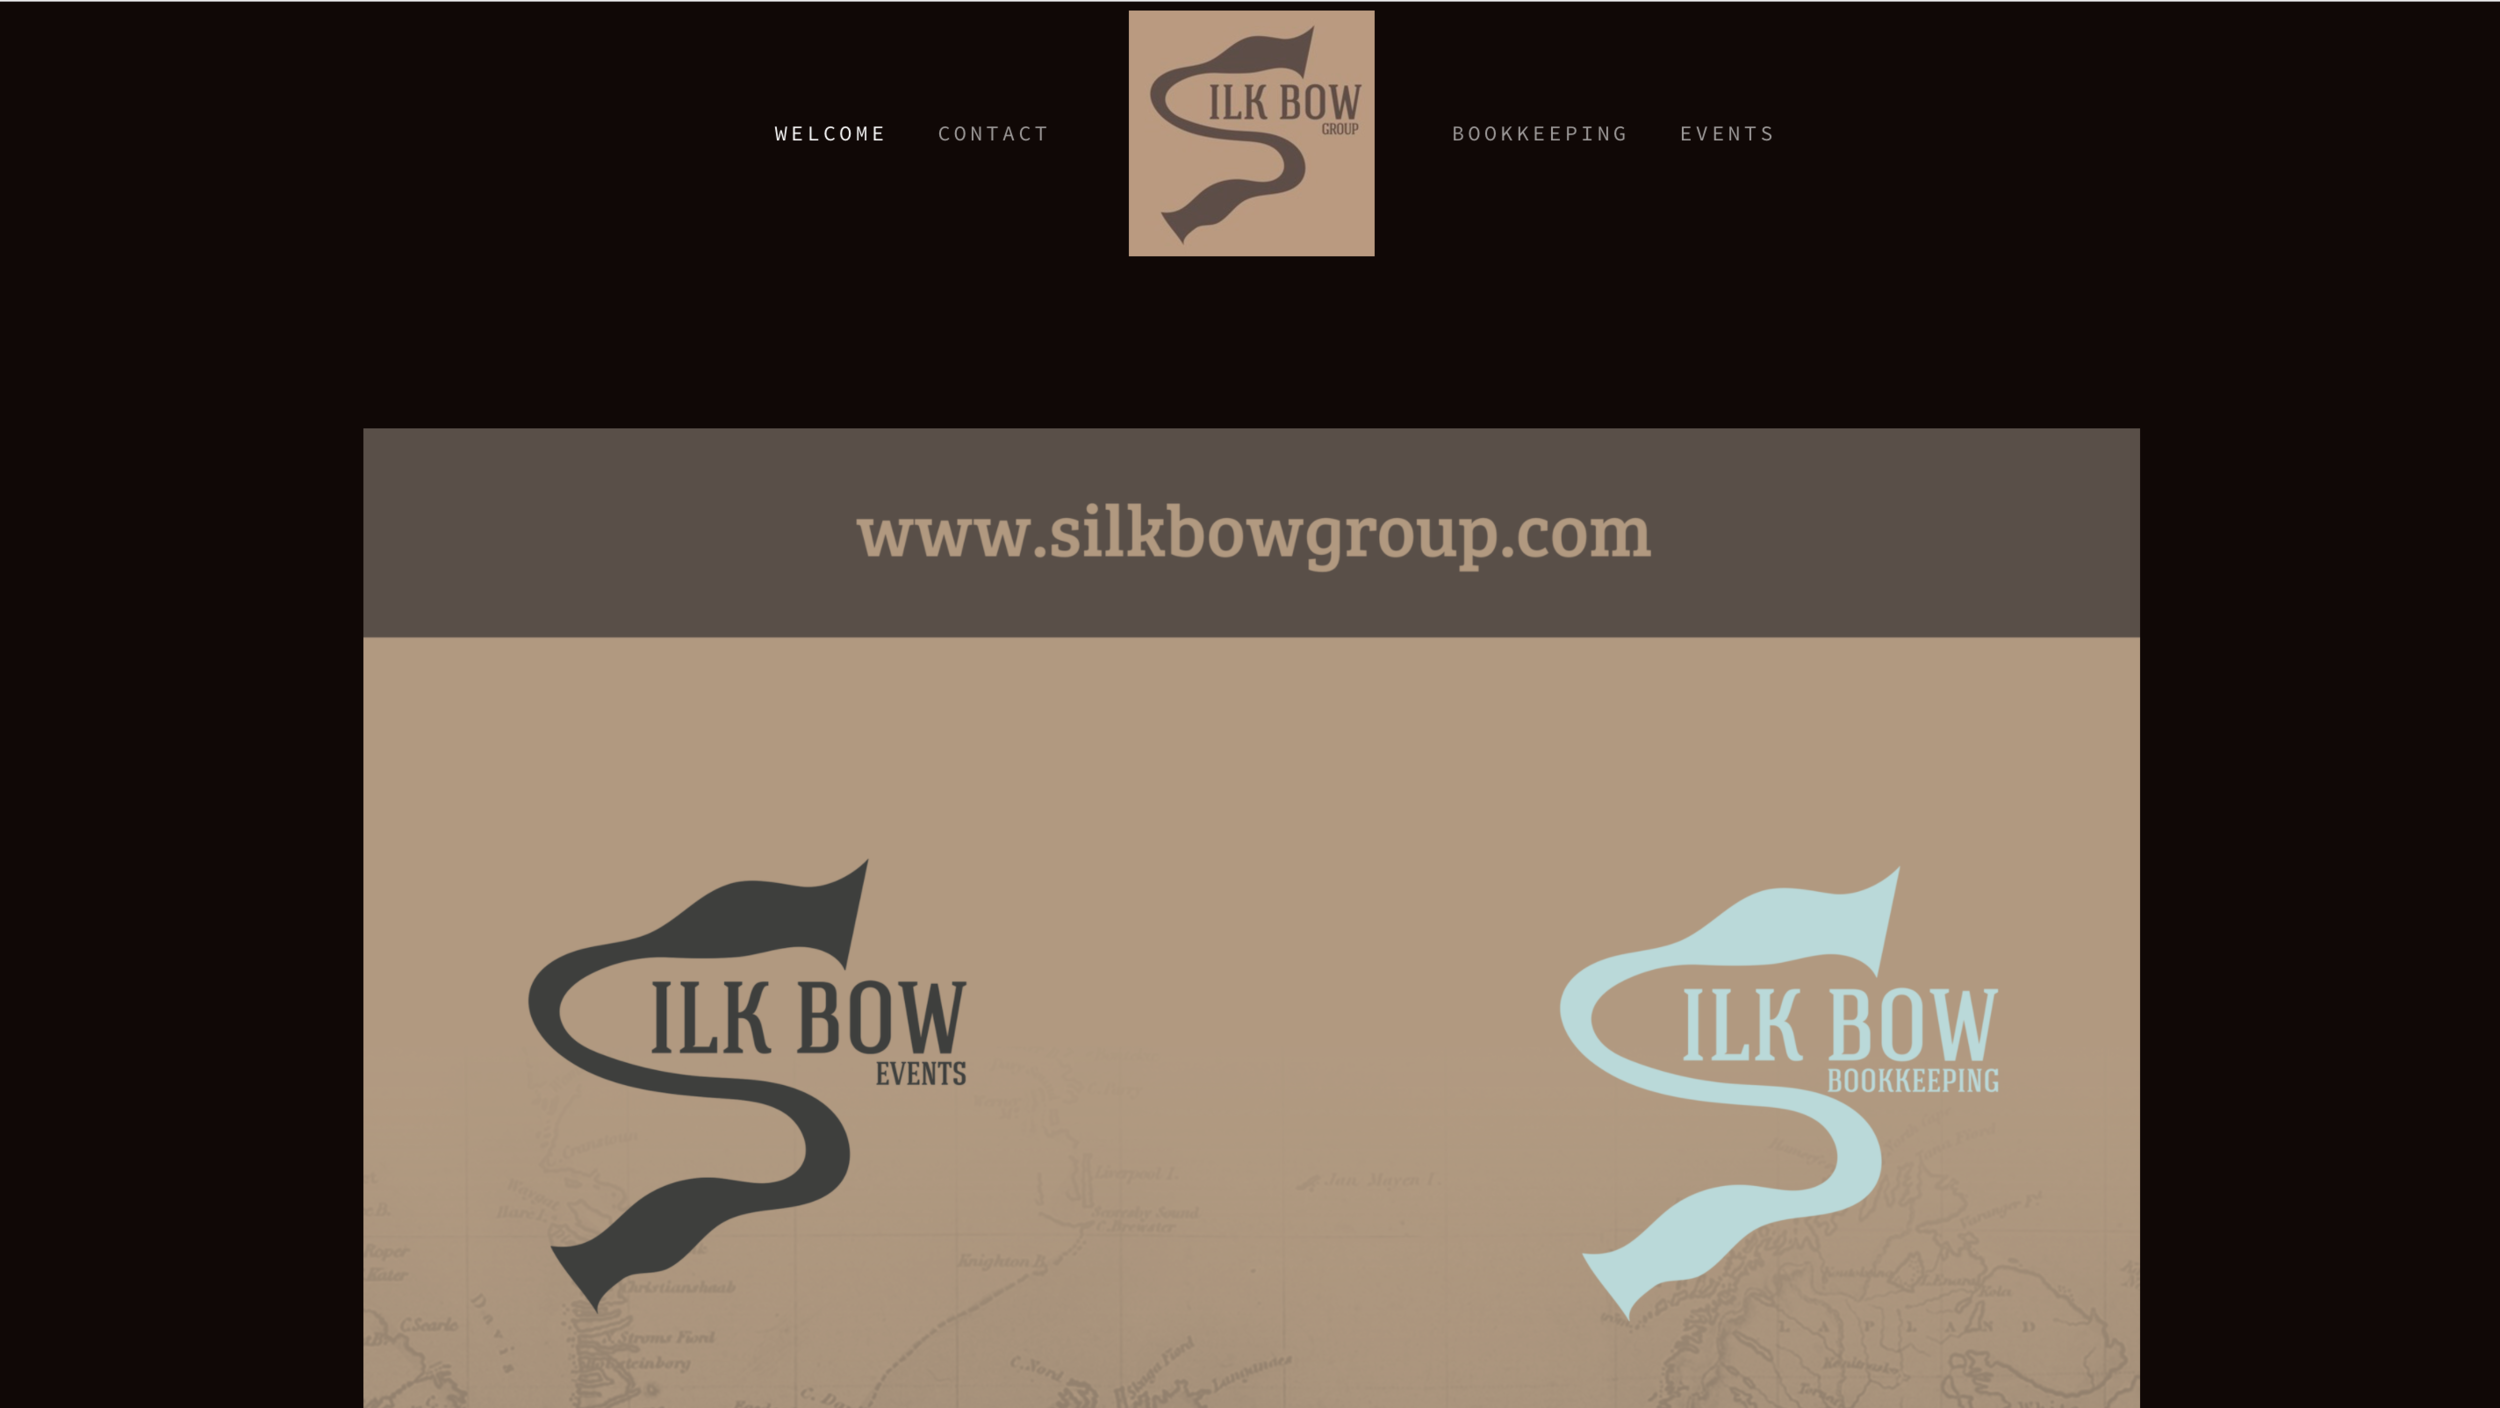 Silk Bow Group - Silk Bow Group is a parent company for Silk Bow Events and Silk Bow Bookkeeping. This site was set up to give basic company details as well as links to the other sites.